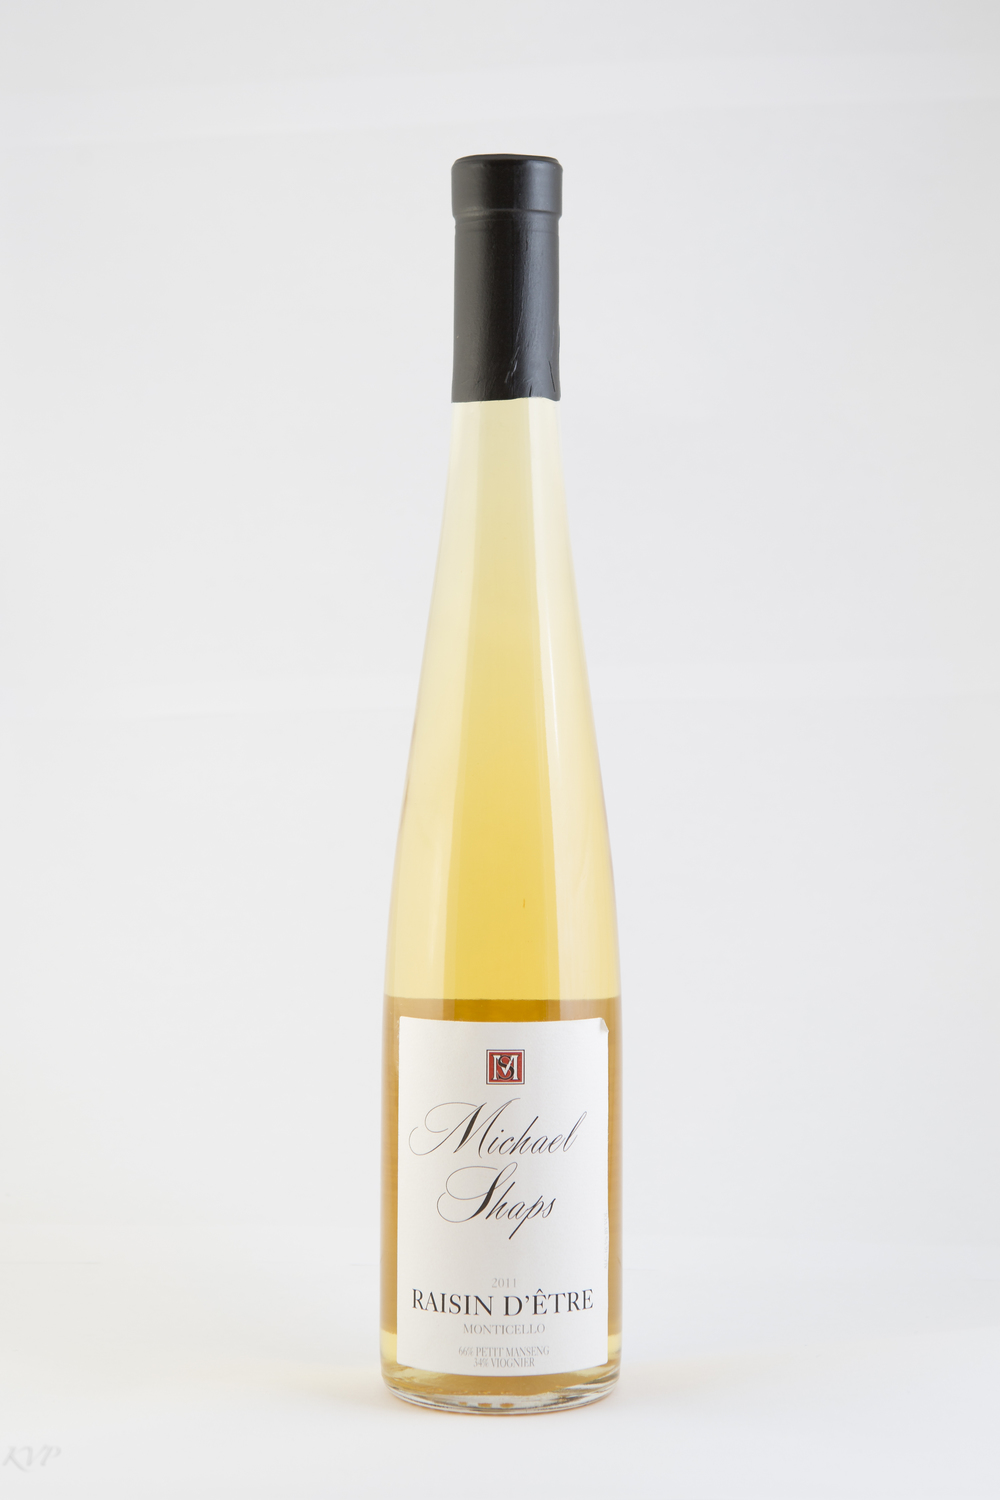 "Michael Shaps Raisin D'Être White 2012 $25 This unique wine won a Gold medal at the 2015 Governor's Cup wine competition and was also selected for the Governor's Case.  The 2012 Raisin d'Être (a play on words) is our way of replicating a traditional late harvest wine.  Similar to late harvest wines where grapes turn to raisons while still hanging on the vines, we salvaged tobacco drying barns from Southside Virginia for use in a similar drying process, but where the drying process takes place in the barns, not on the vines.  Utilizing fans and heat to dry the grapes out (thus ""raisin"" not ""raison""), we are able to create a unique dessert wine with highly concentrated fruit."